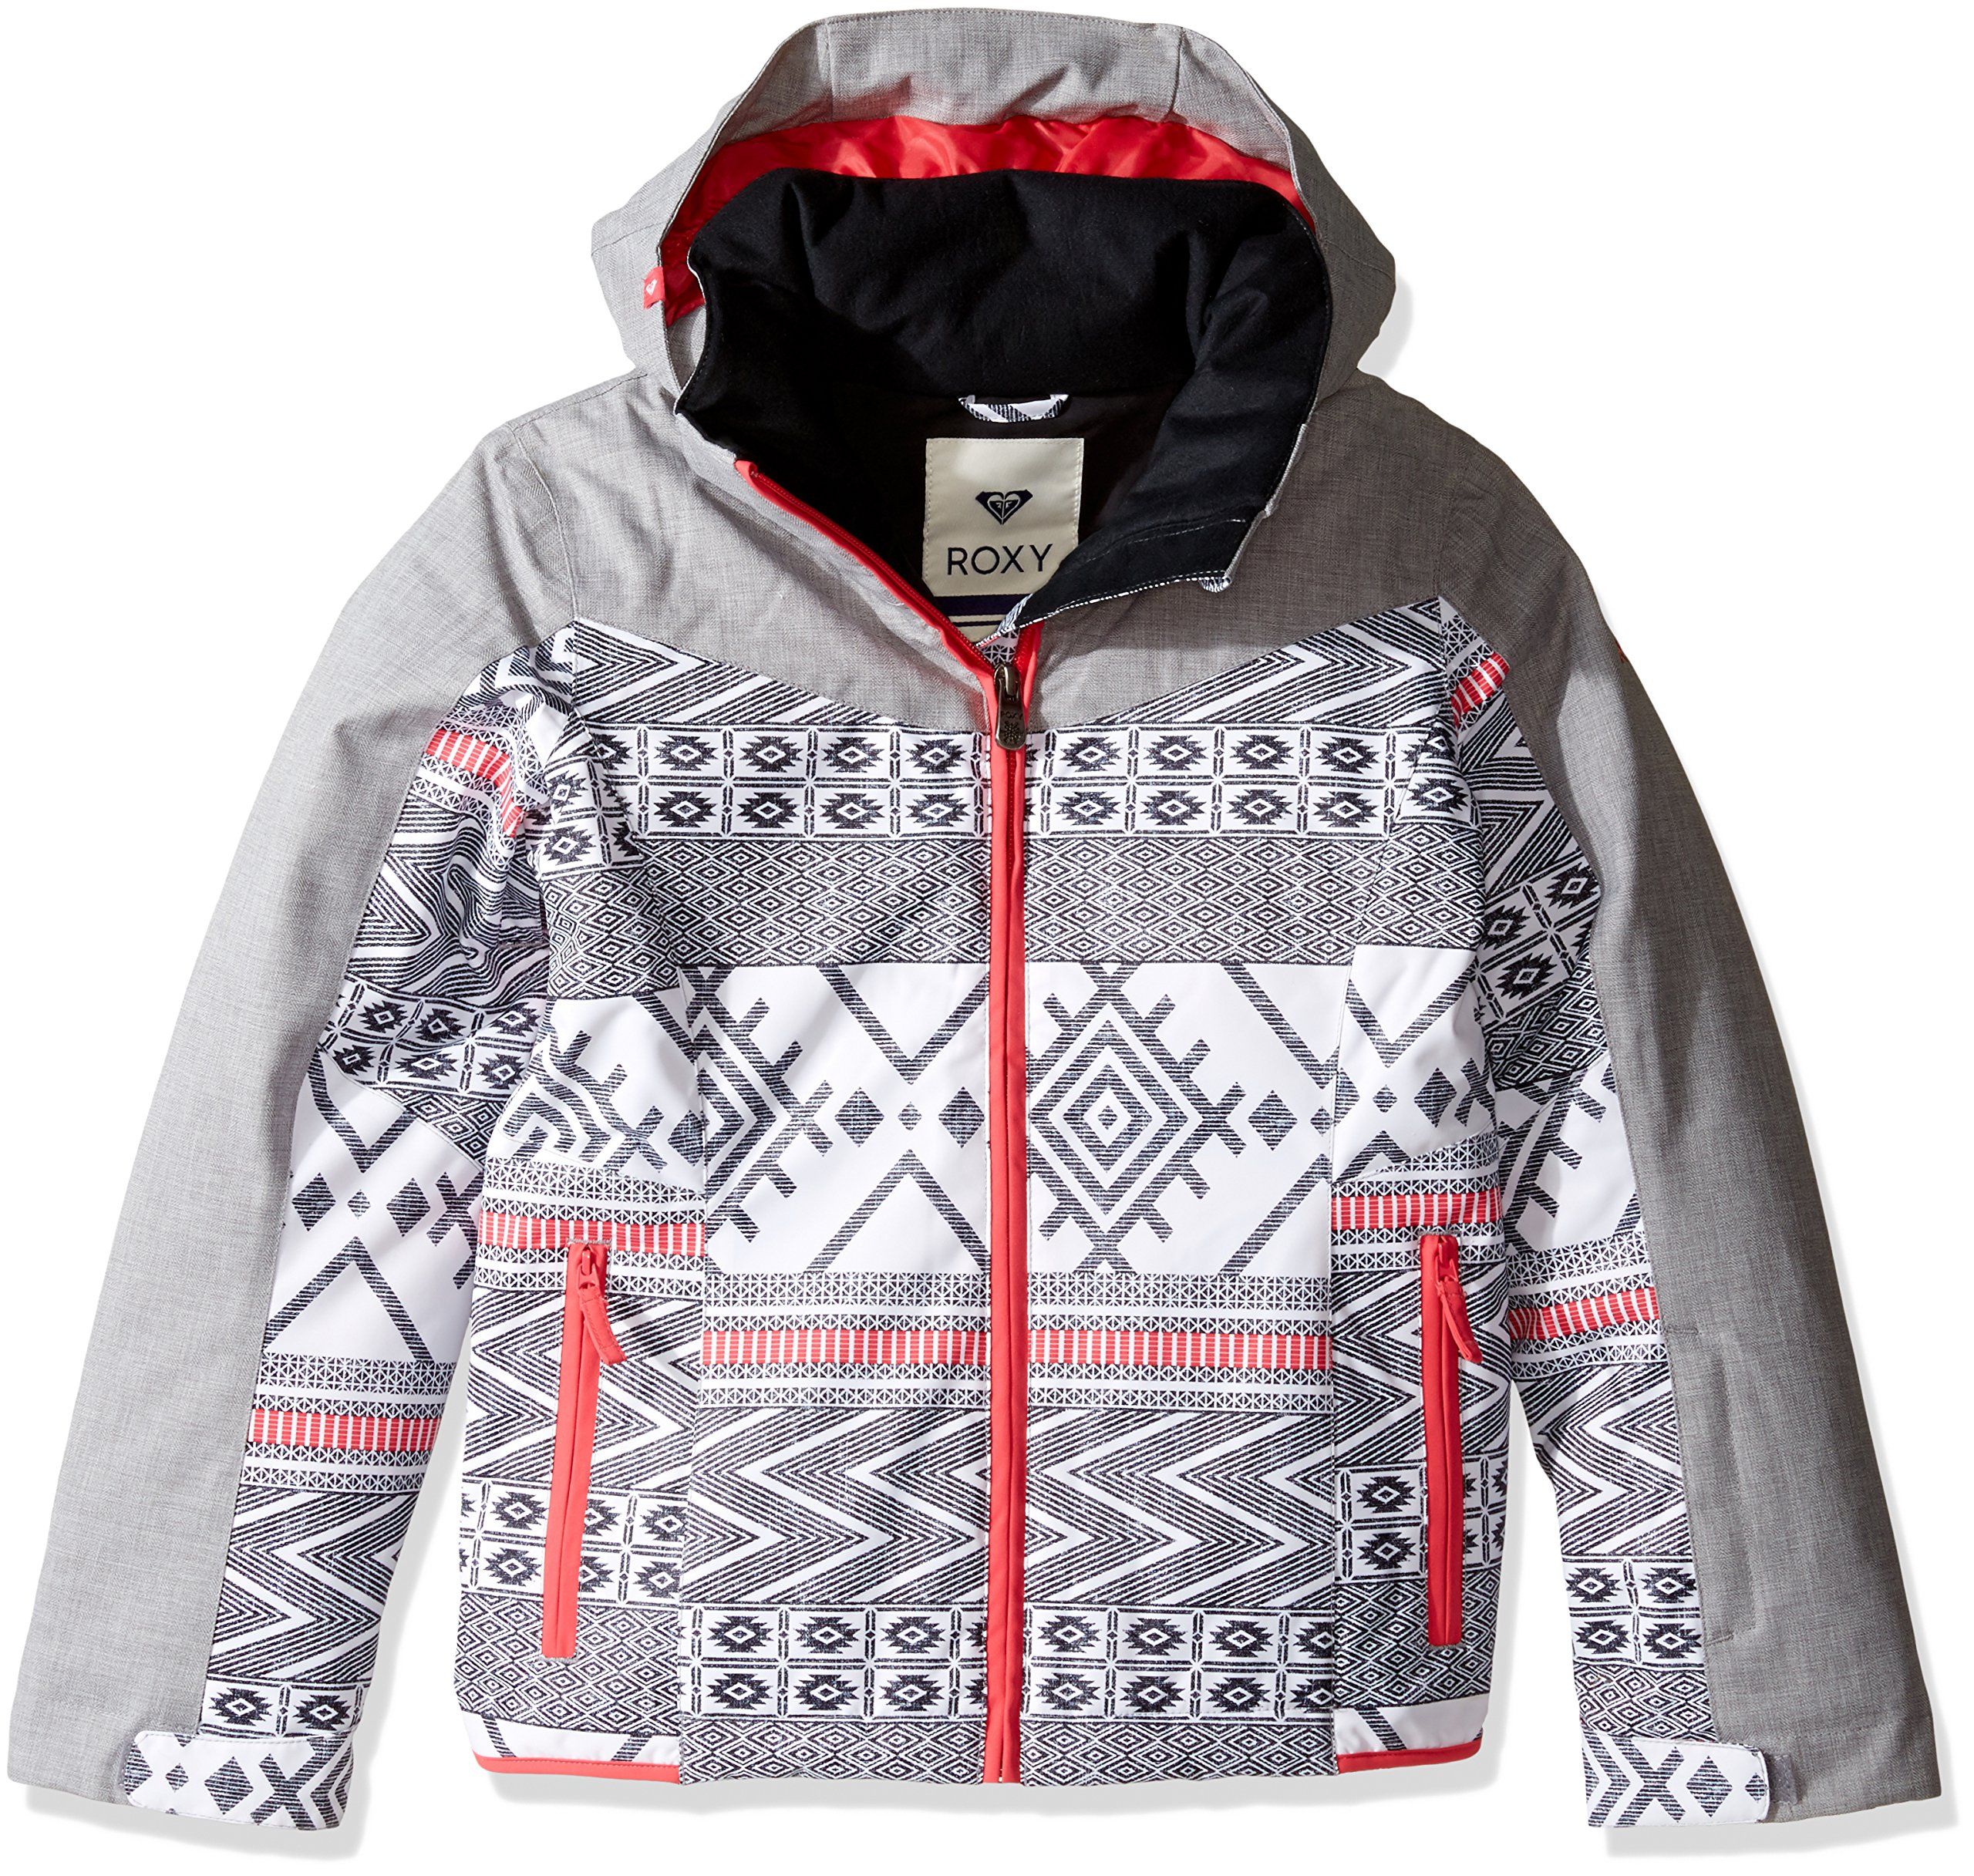 Roxy Big Girls' Sassy Snow Jacket, Windy Road, 10/M by Roxy